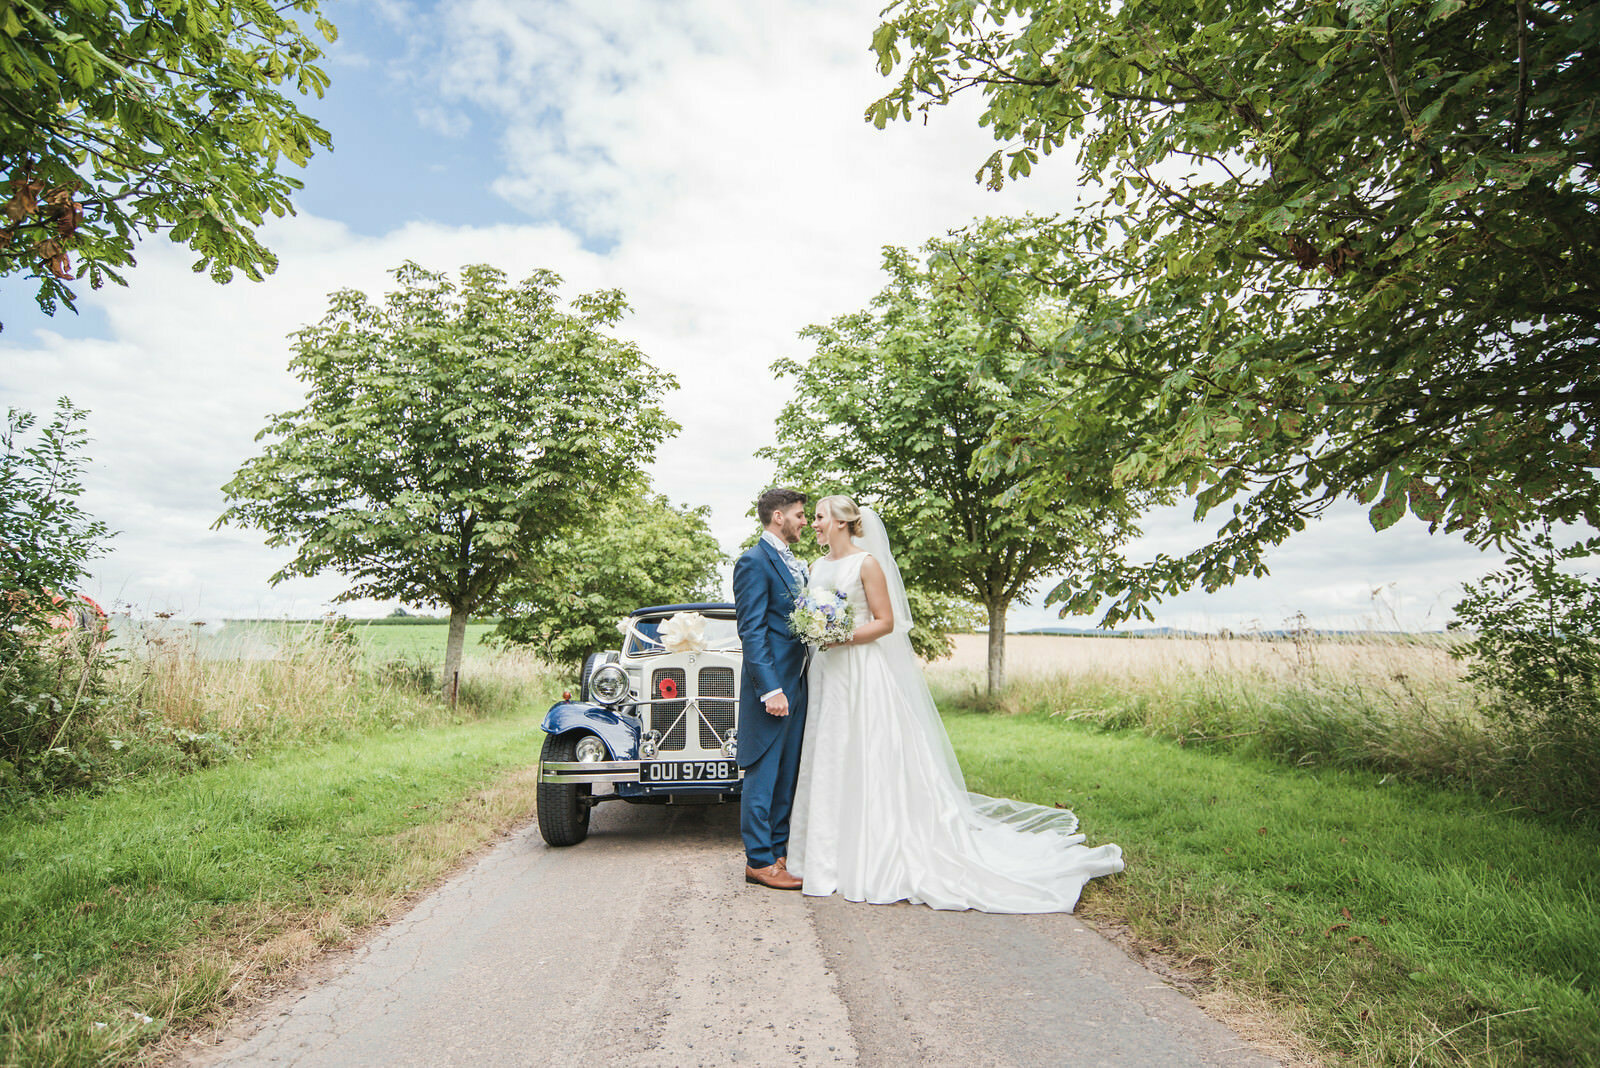 Lyde Arundel wedding photographer